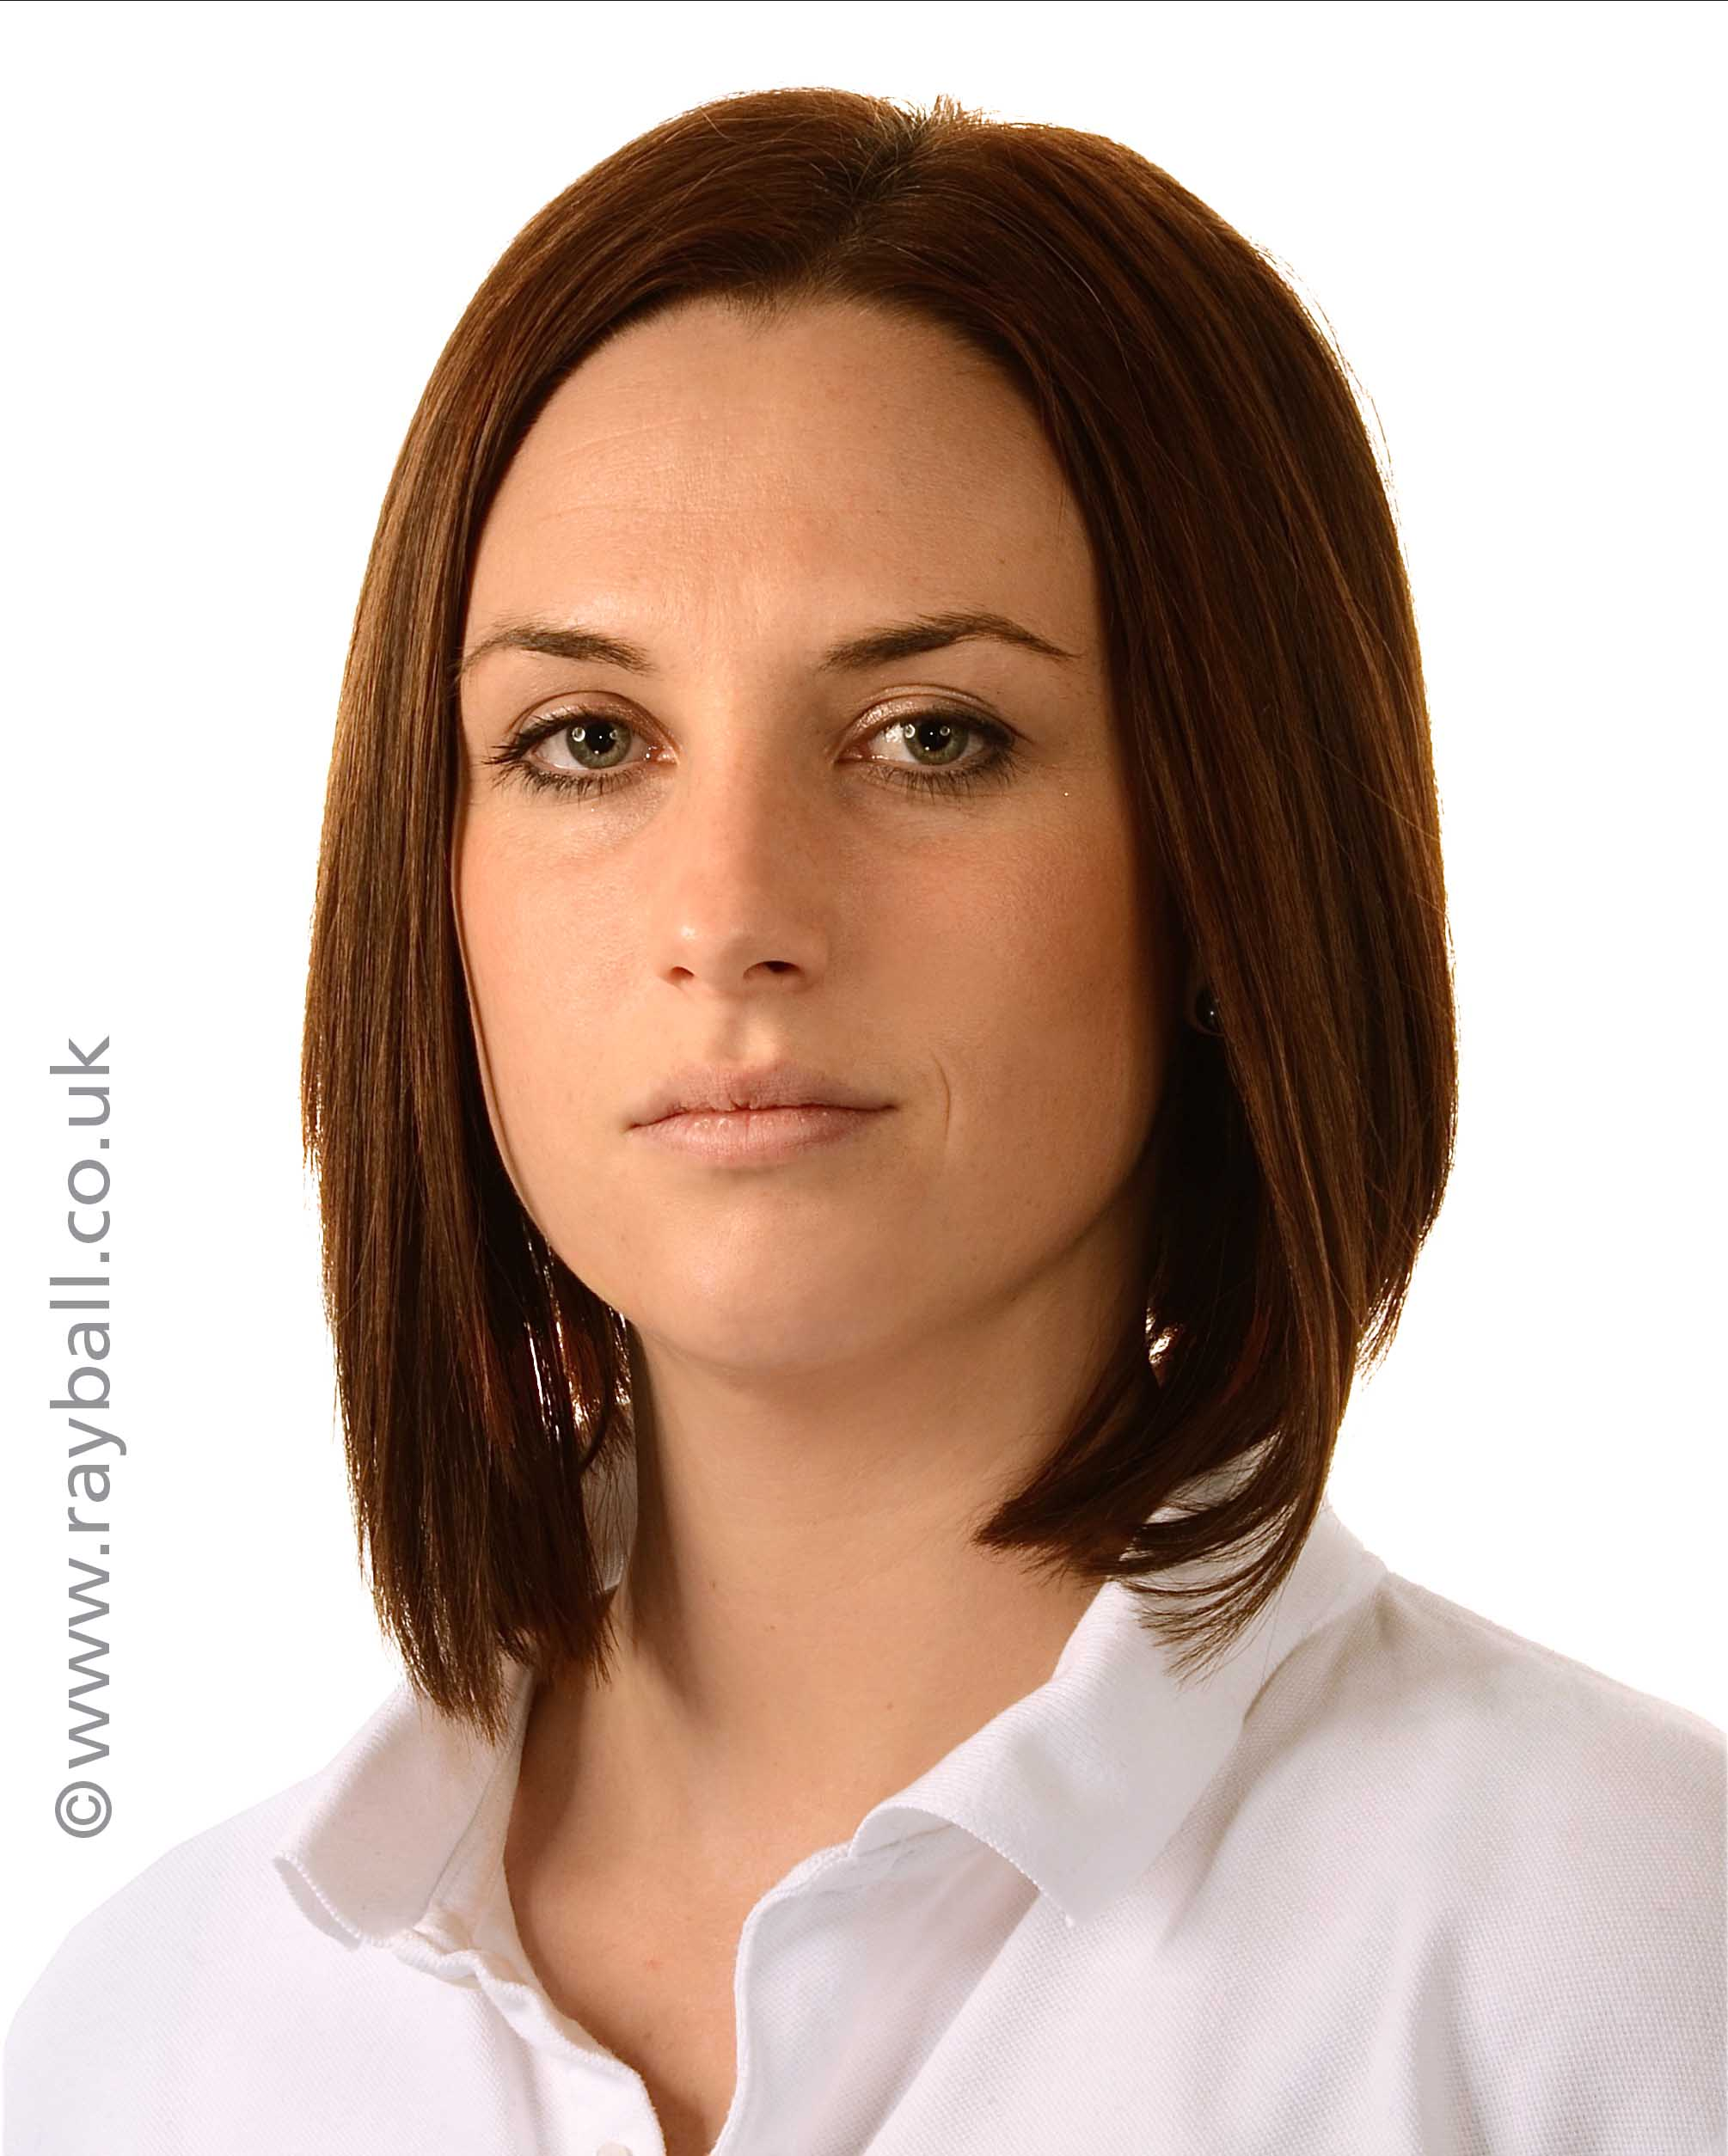 Corporate portrait of young lady from Sutton at Epsom Photography Studio Surrey.